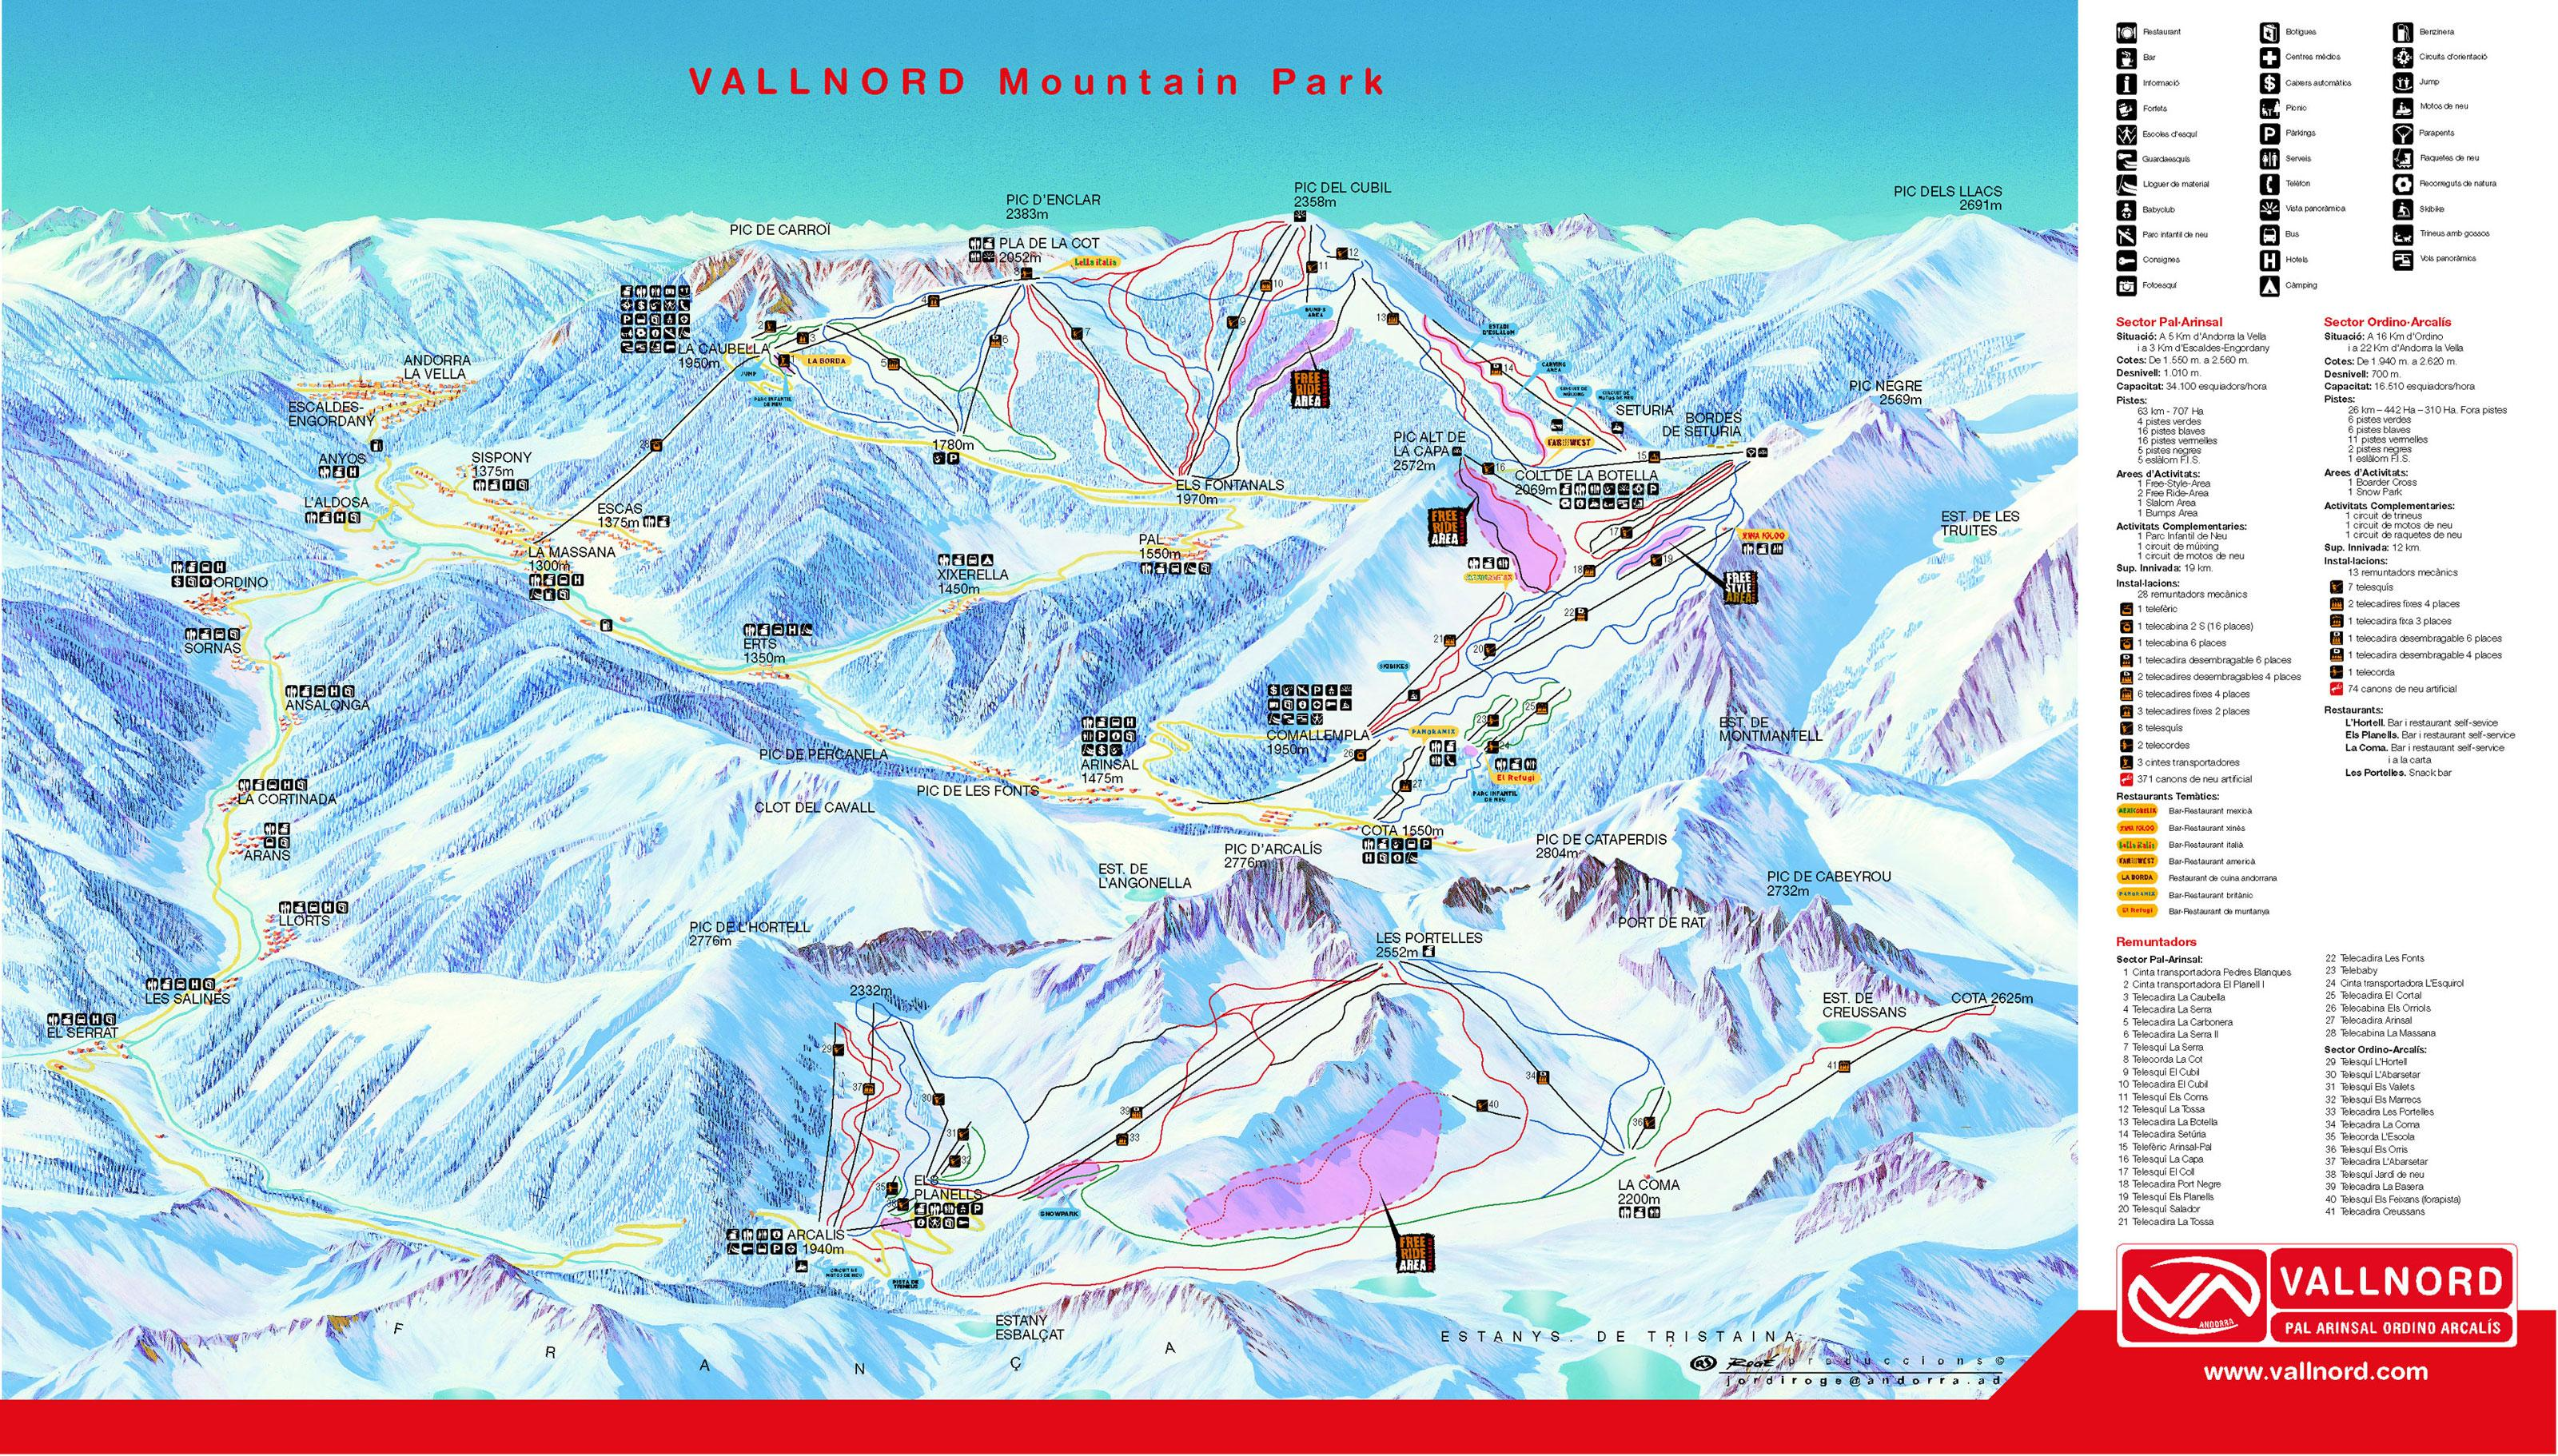 valnord_Map